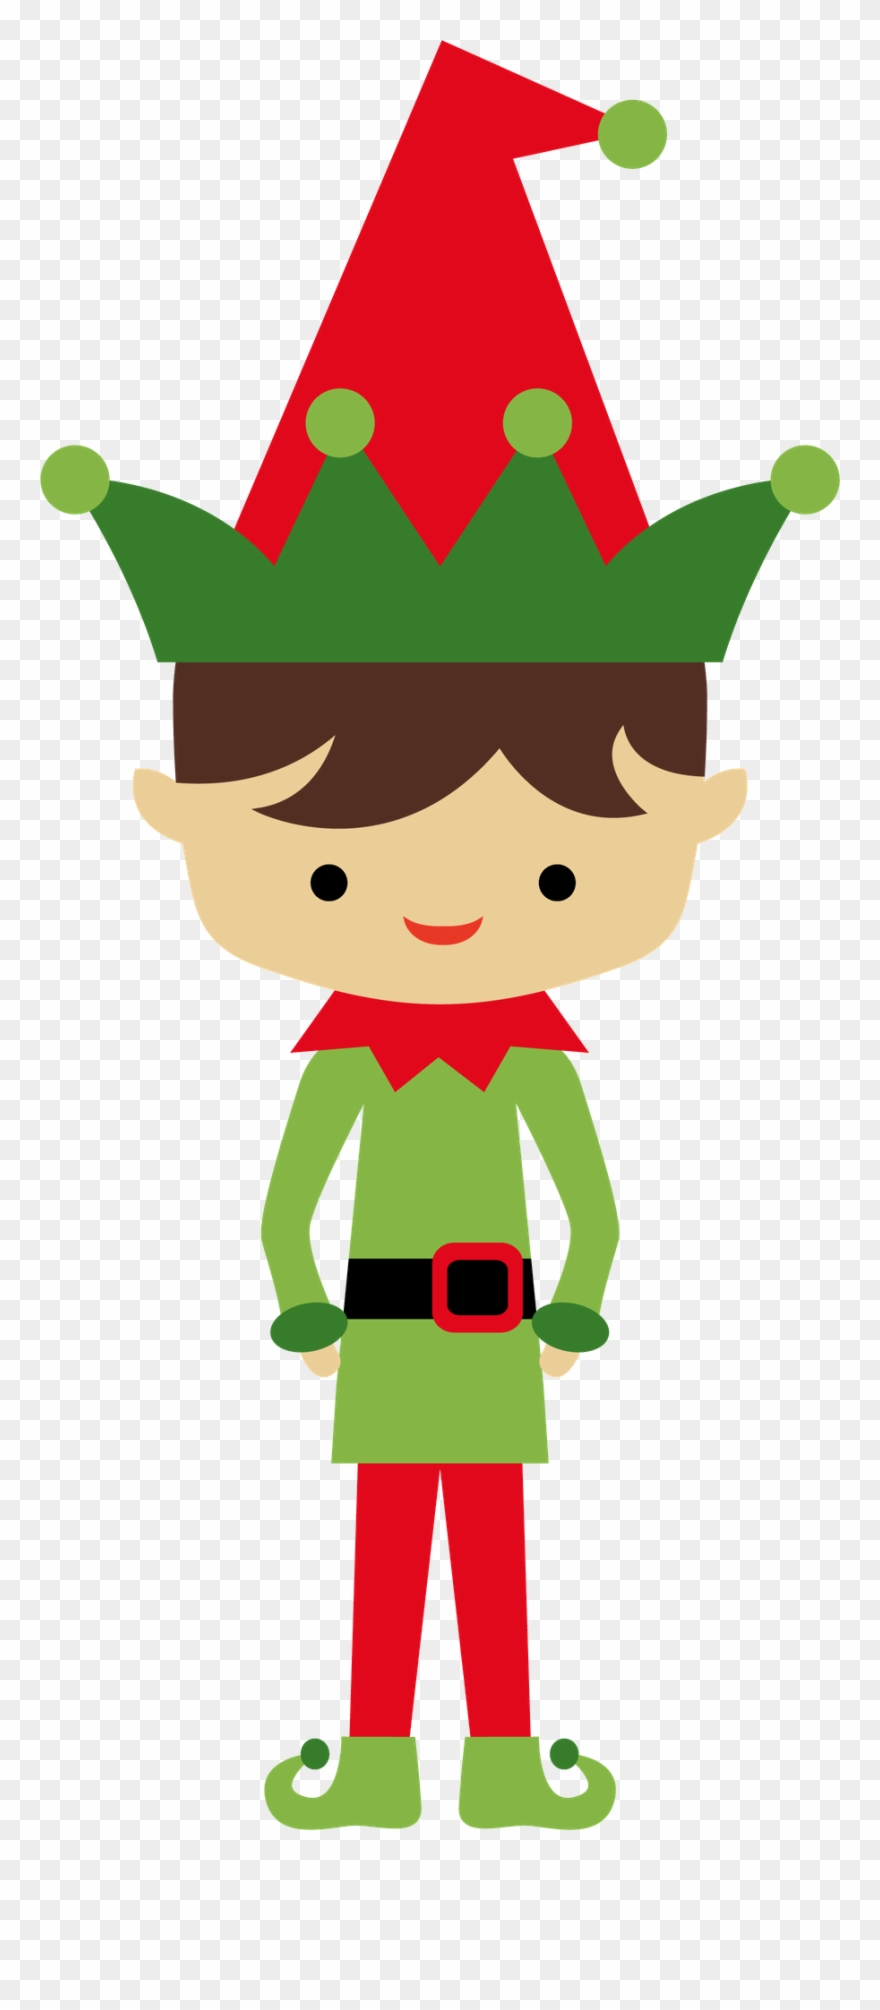 Christmas Elf Clip Art Christmas Templates, Christmas